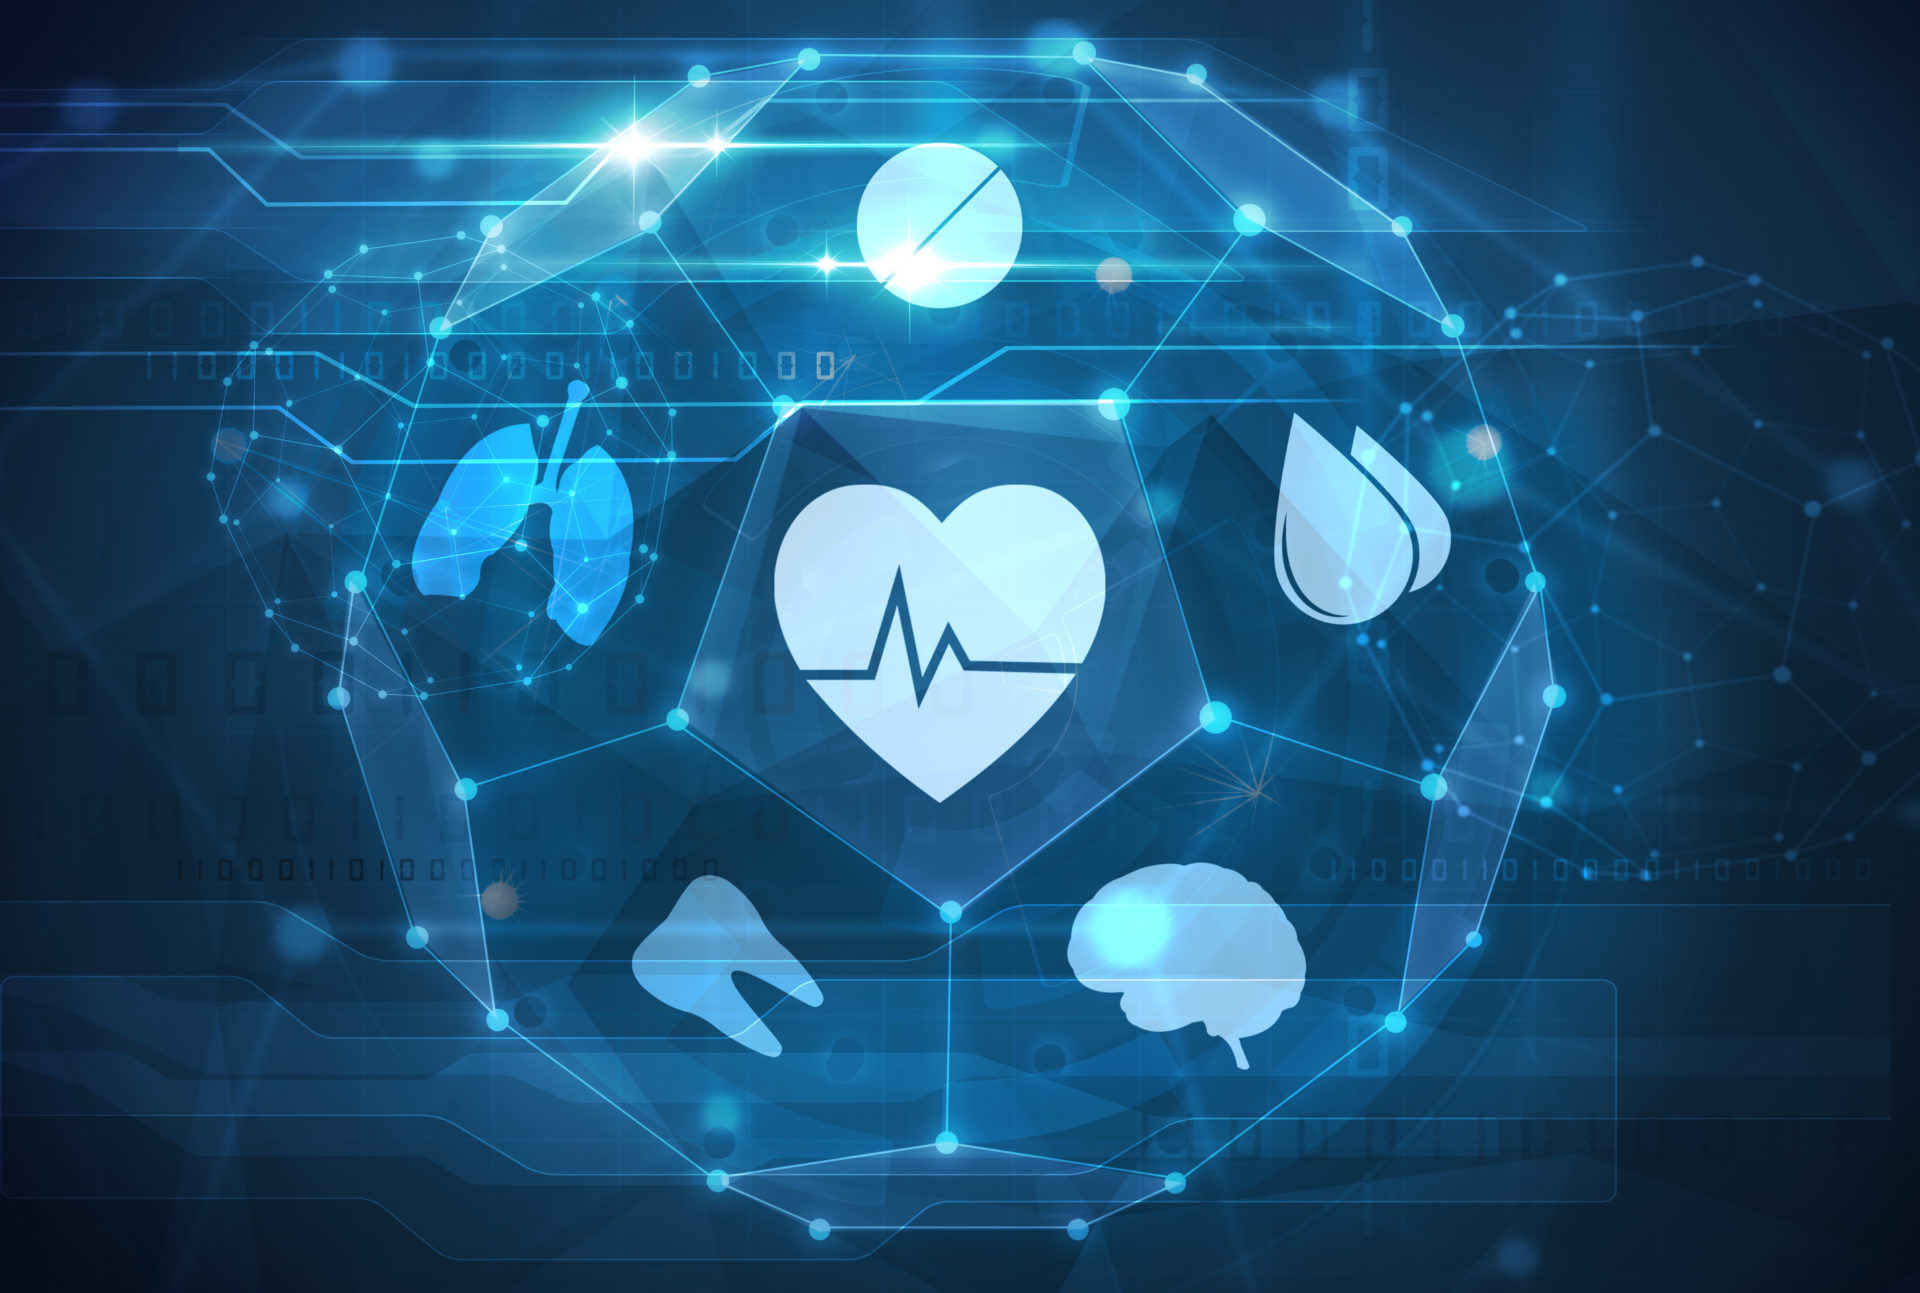 Two thirds of NHS trusts do not have access to data needed for AI deployments